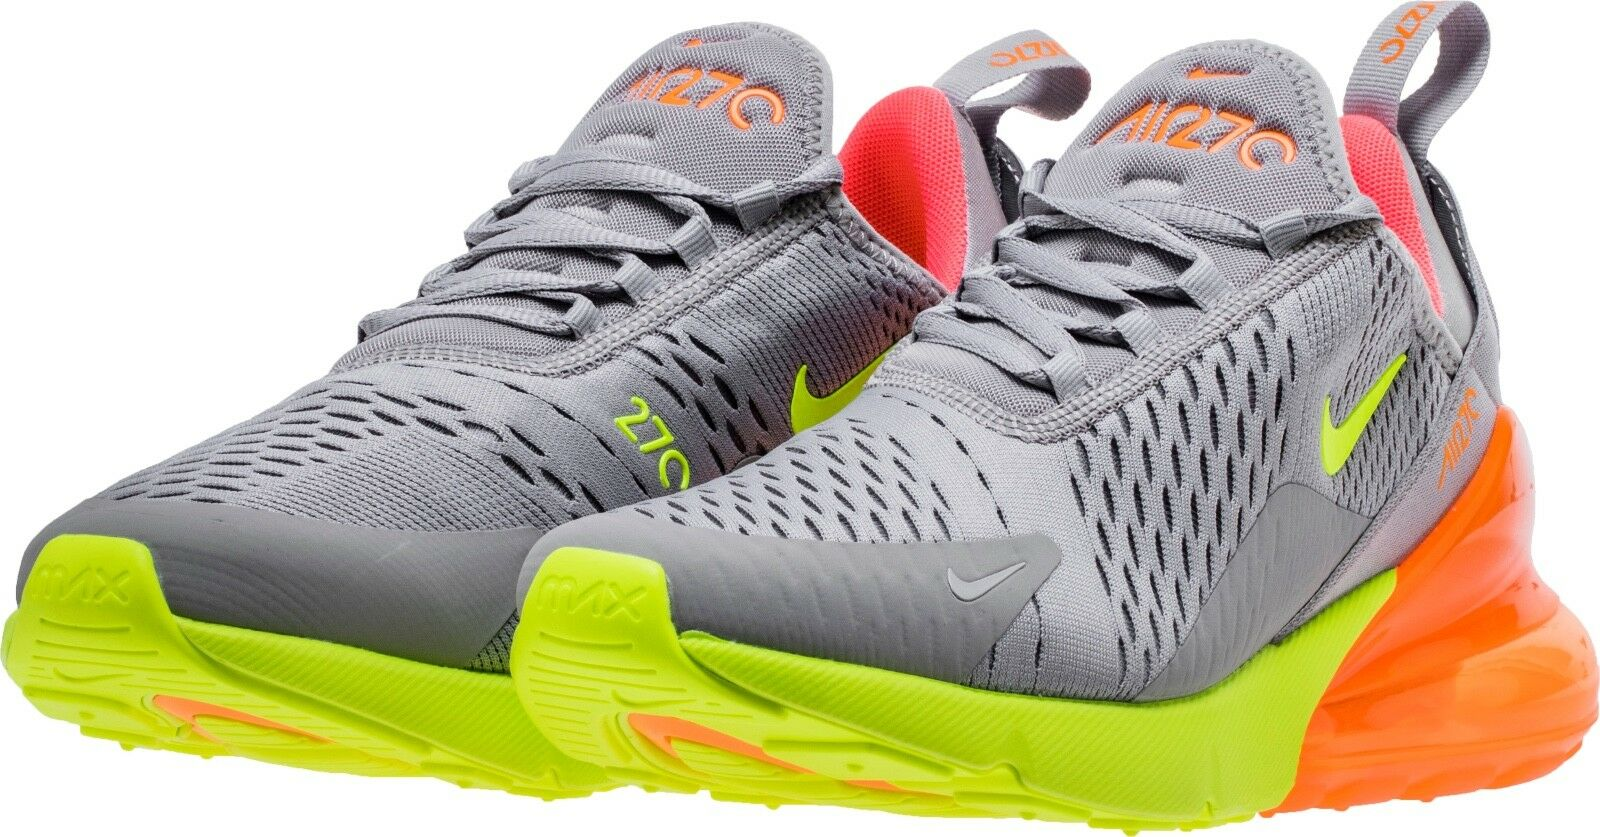 RARE Nike Men's Air Max 270 Running Shoes AH8050-012 Grey Volt Orange The most popular shoes for men and women